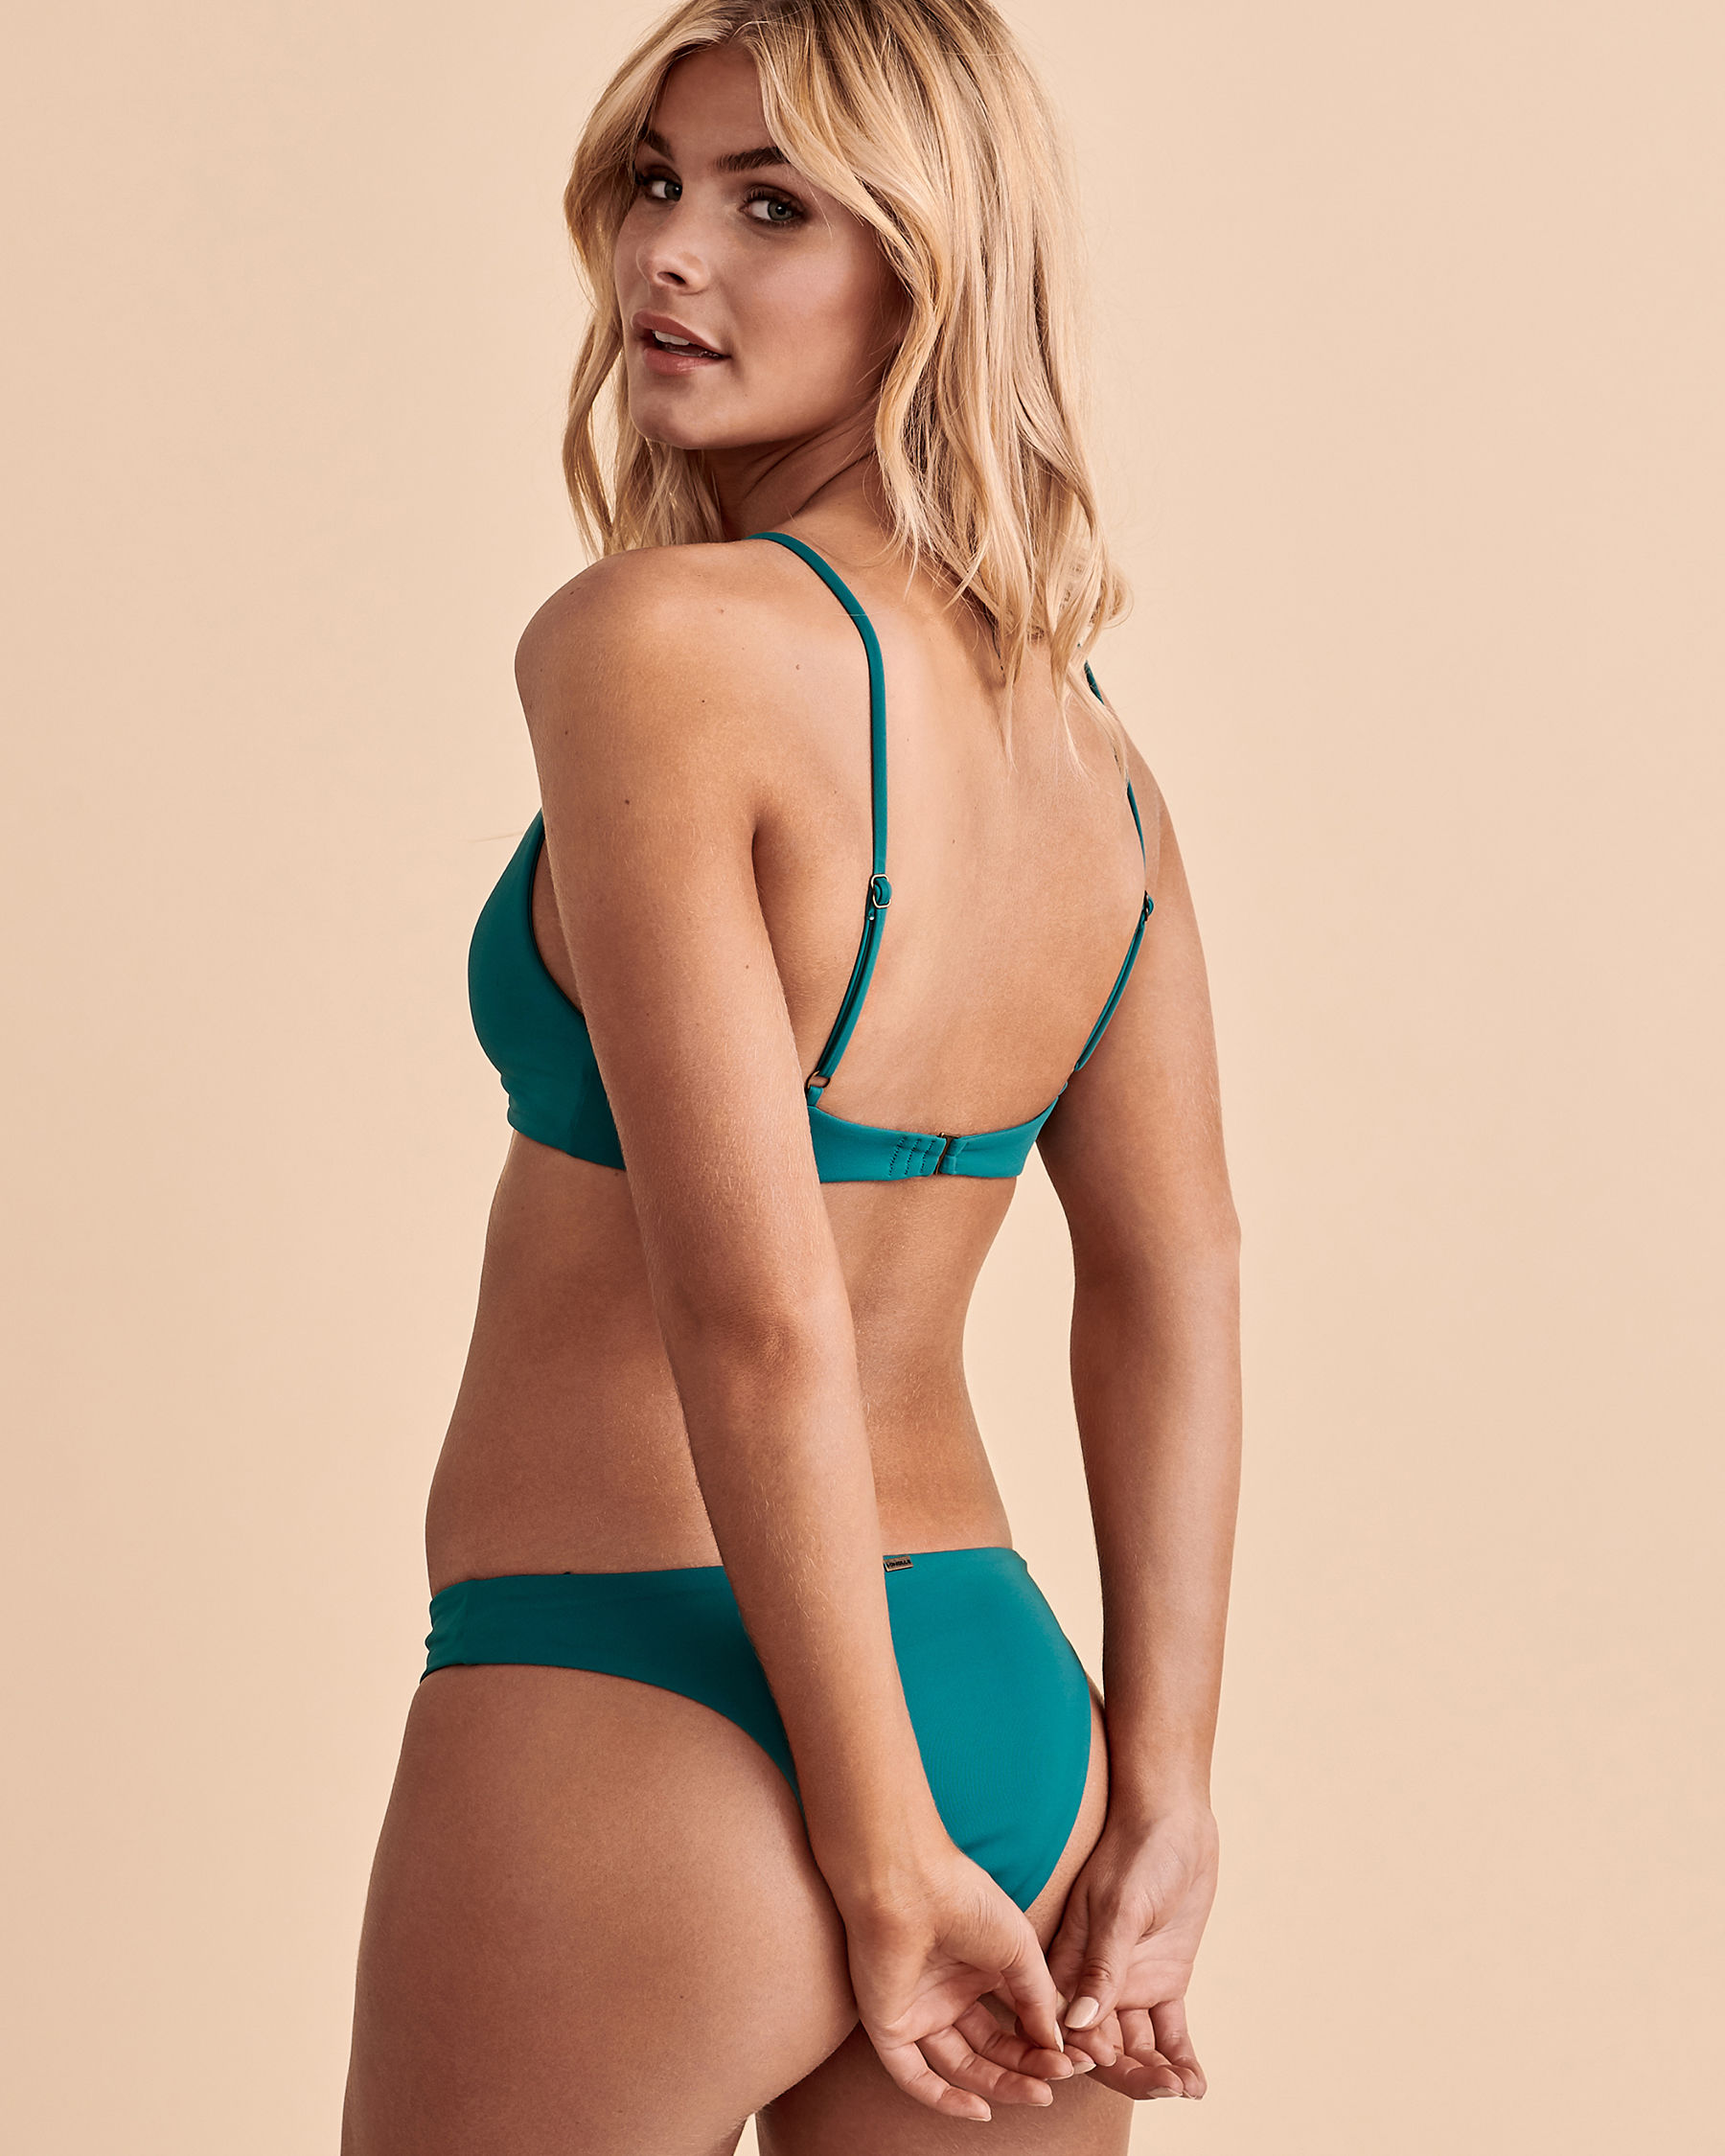 O'NEILL SALTWATER Knotted Triangle Bikini Top Green SP0474003 - View2